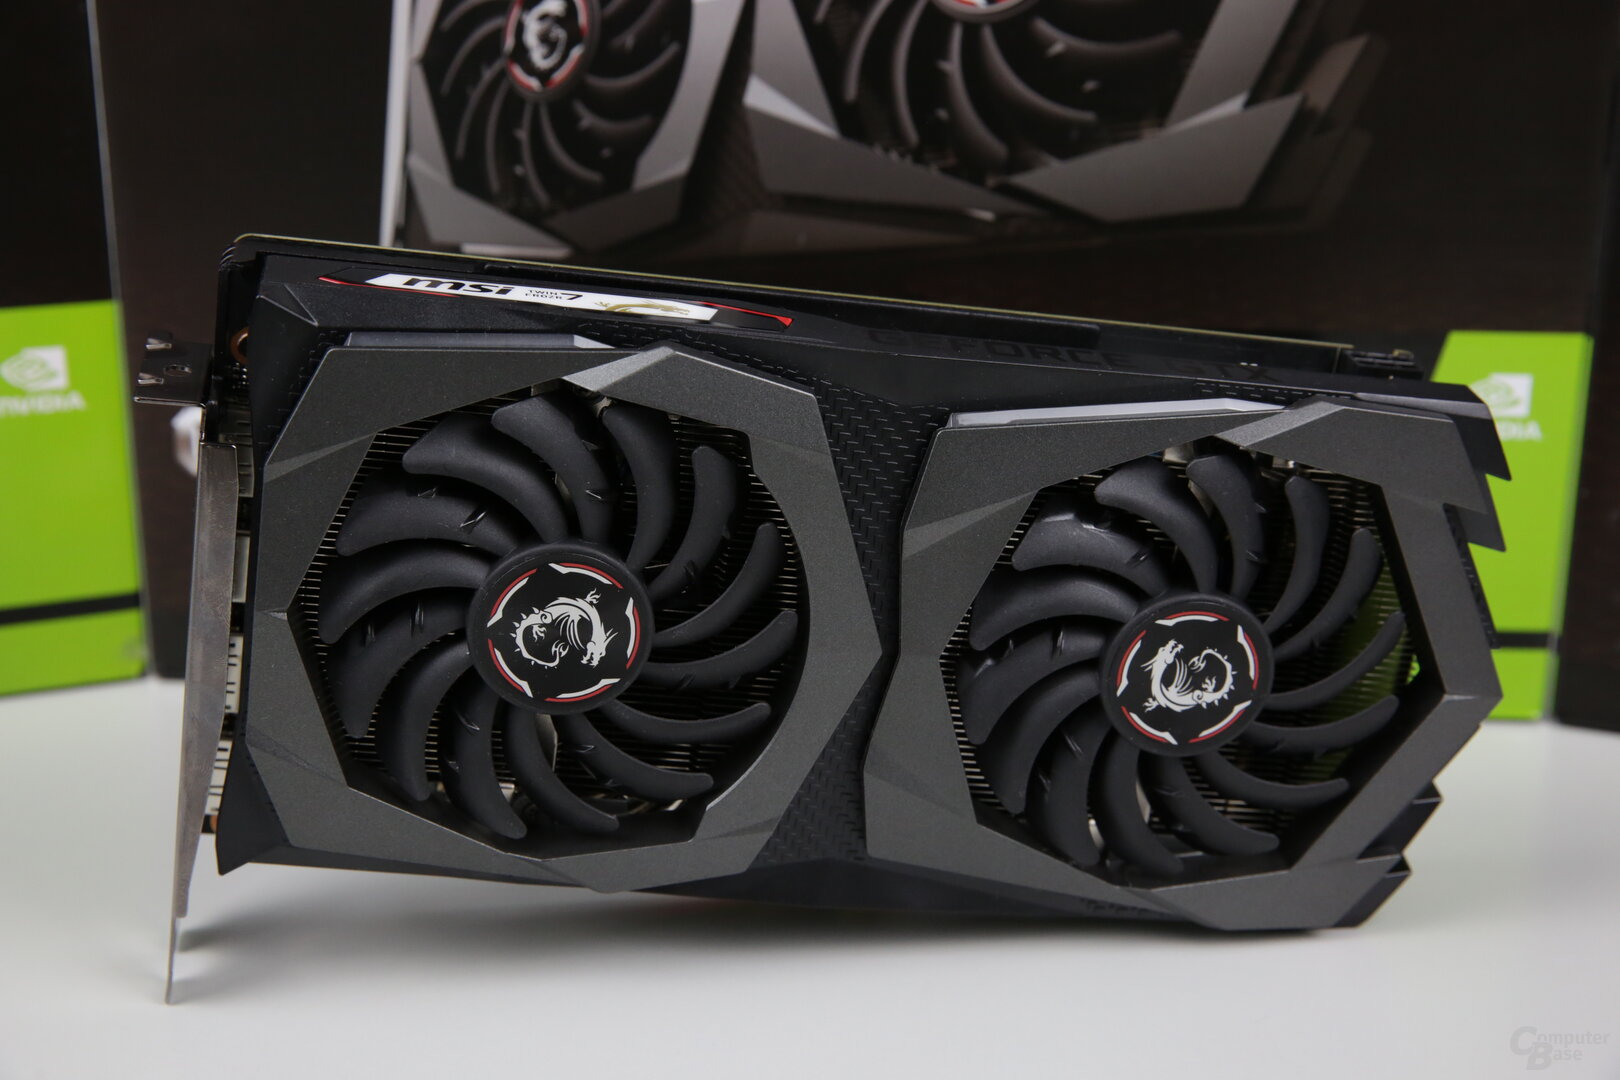 Die MSI GeForce GTX 1650 Super Gaming X im Test